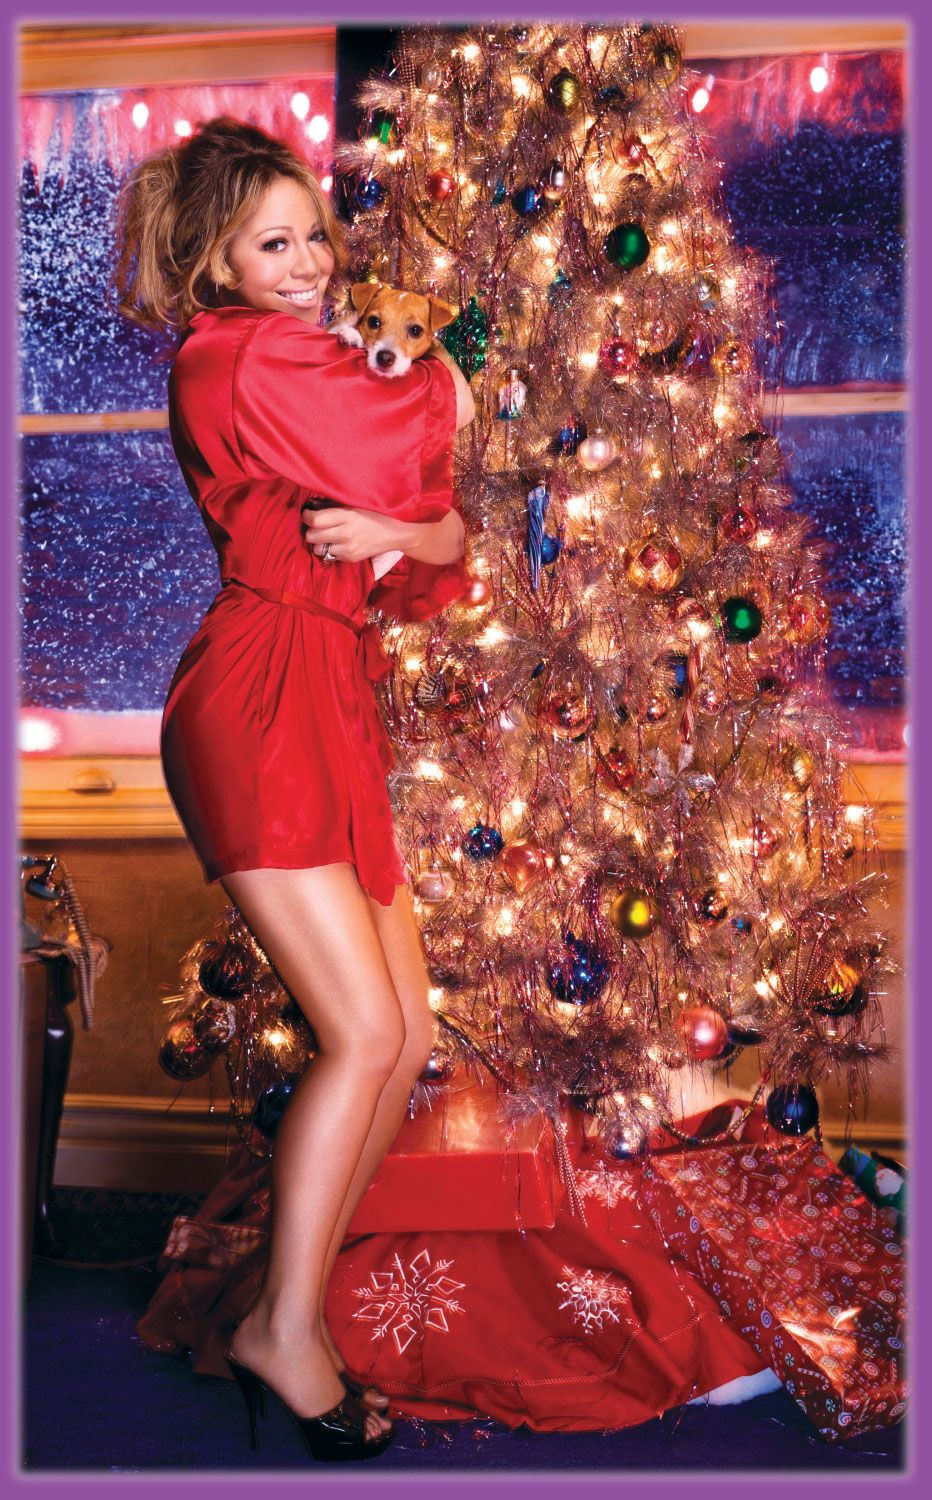 Mariah Carey Christmas Mariah Carey Christmas Mariah Carey Mariah